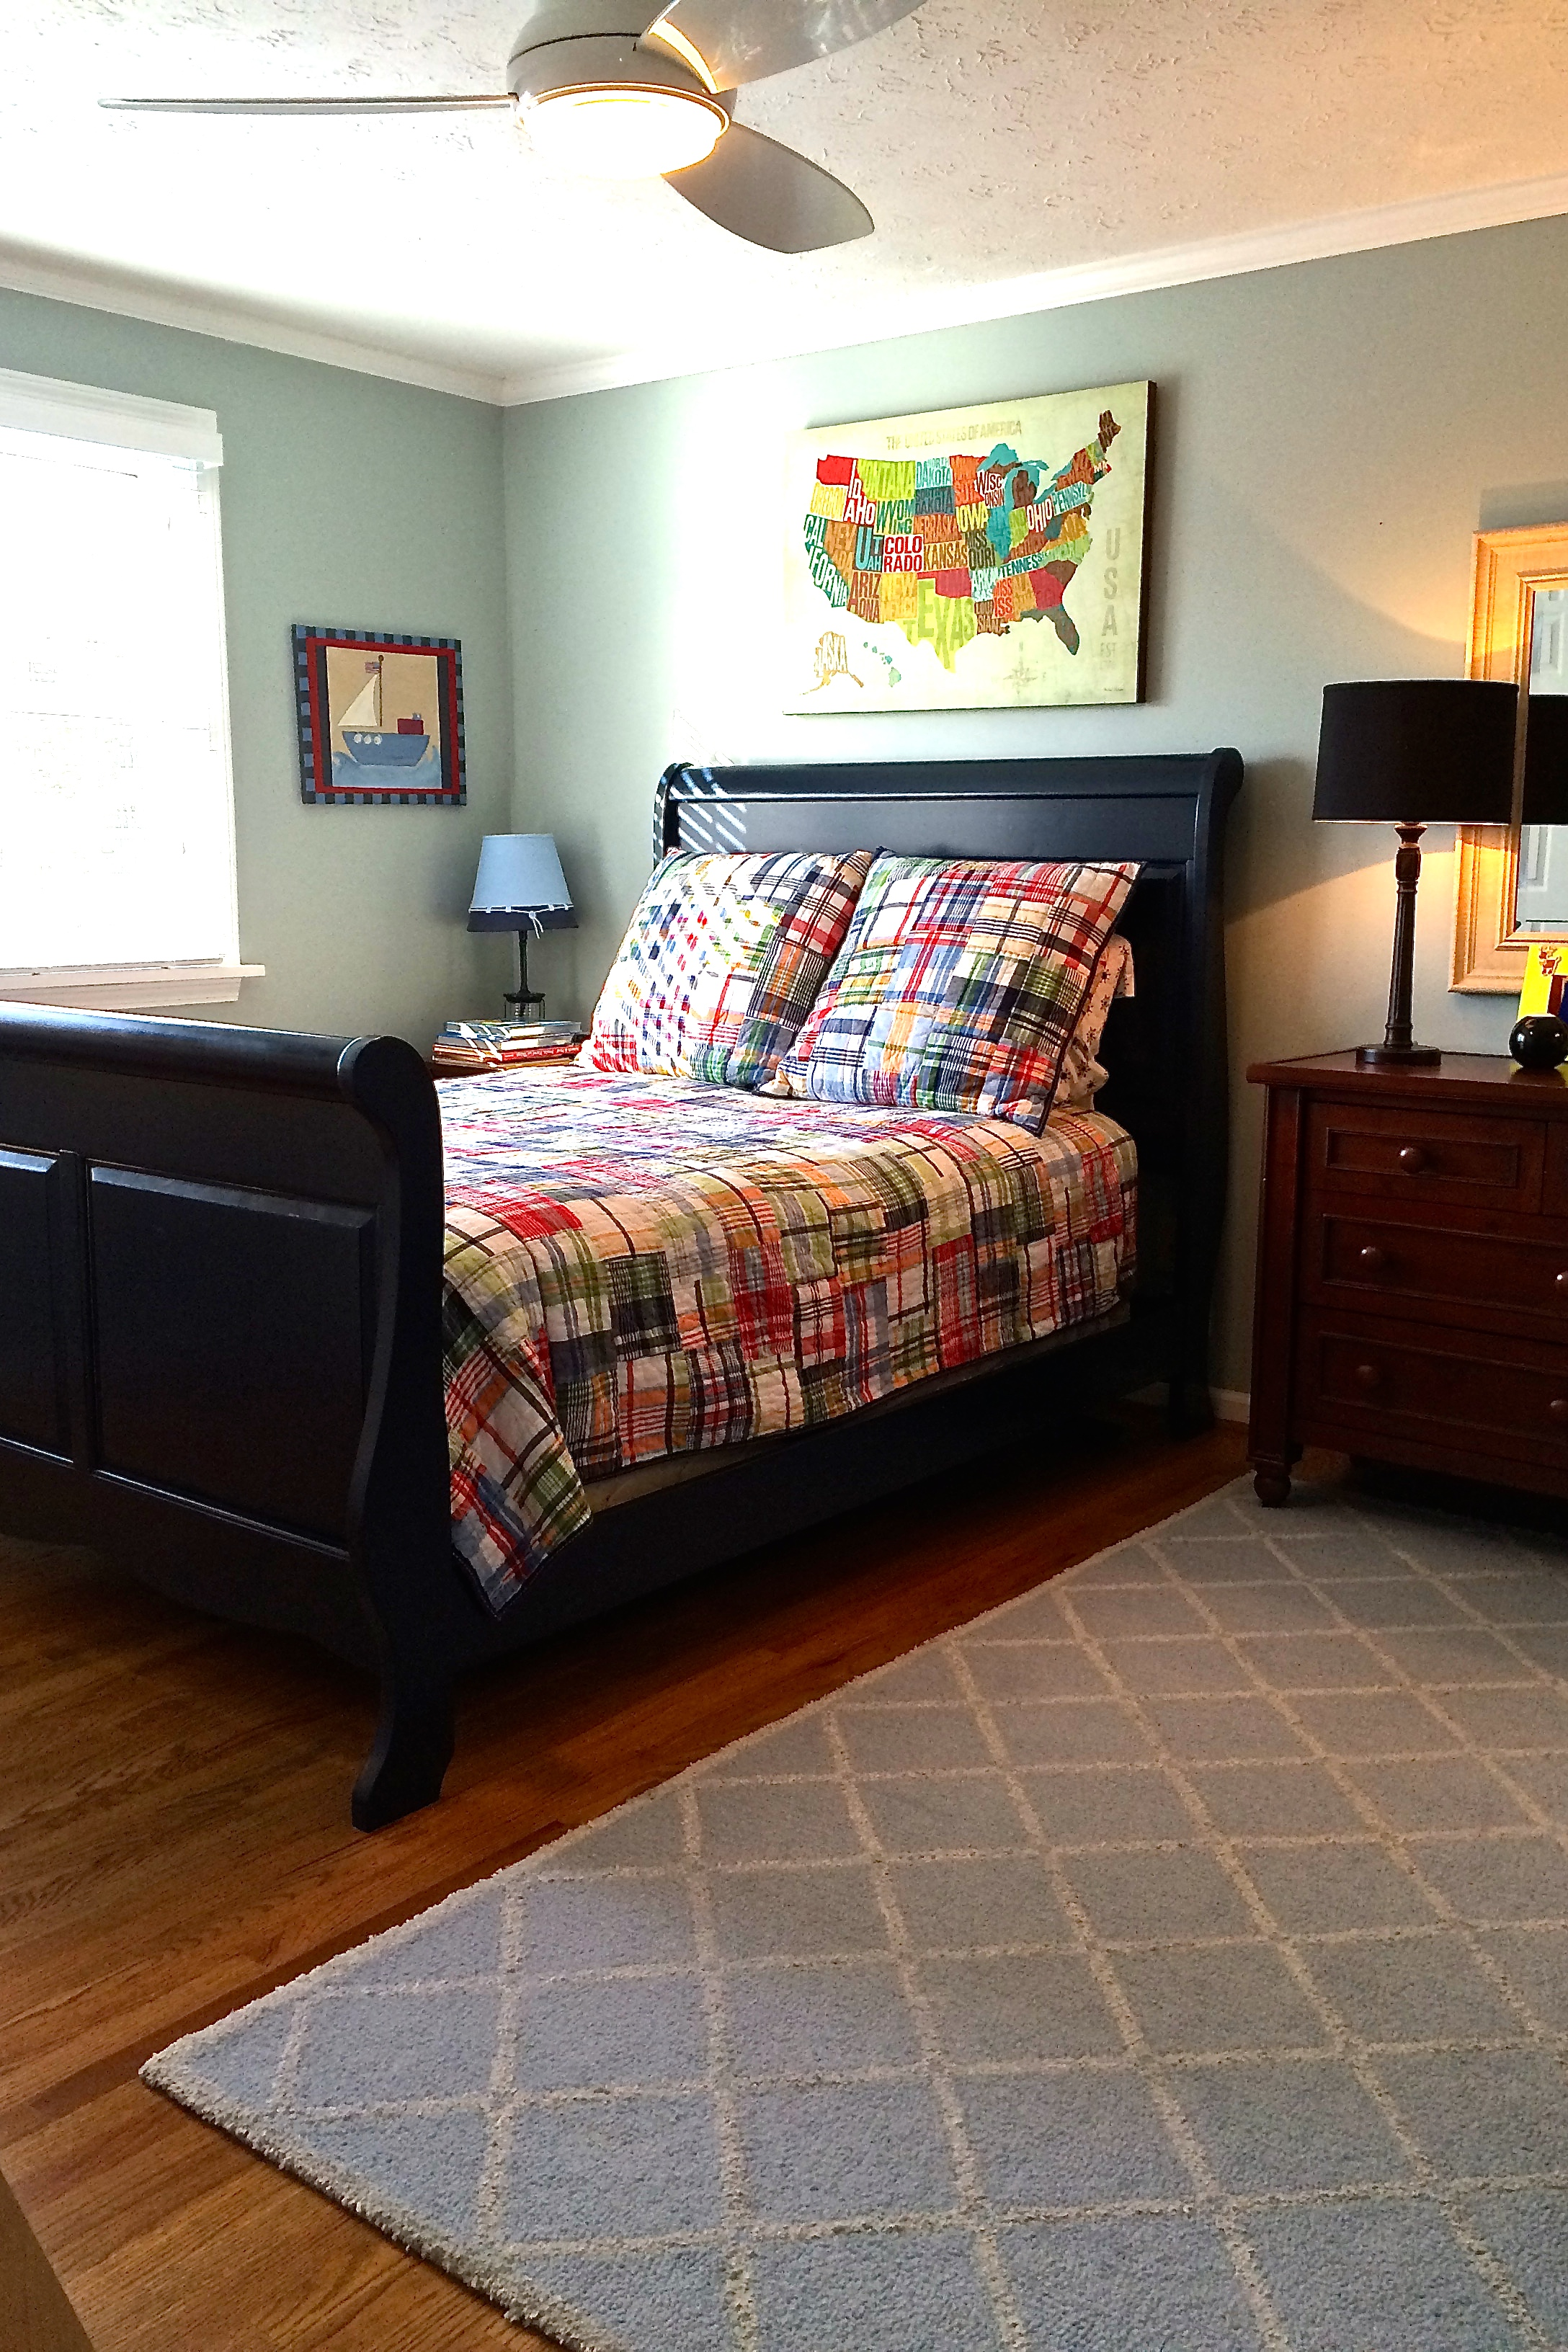 Pottery Barn Sleigh Bed | King Size Headboard and Frame | Bed with Built in Side Tables